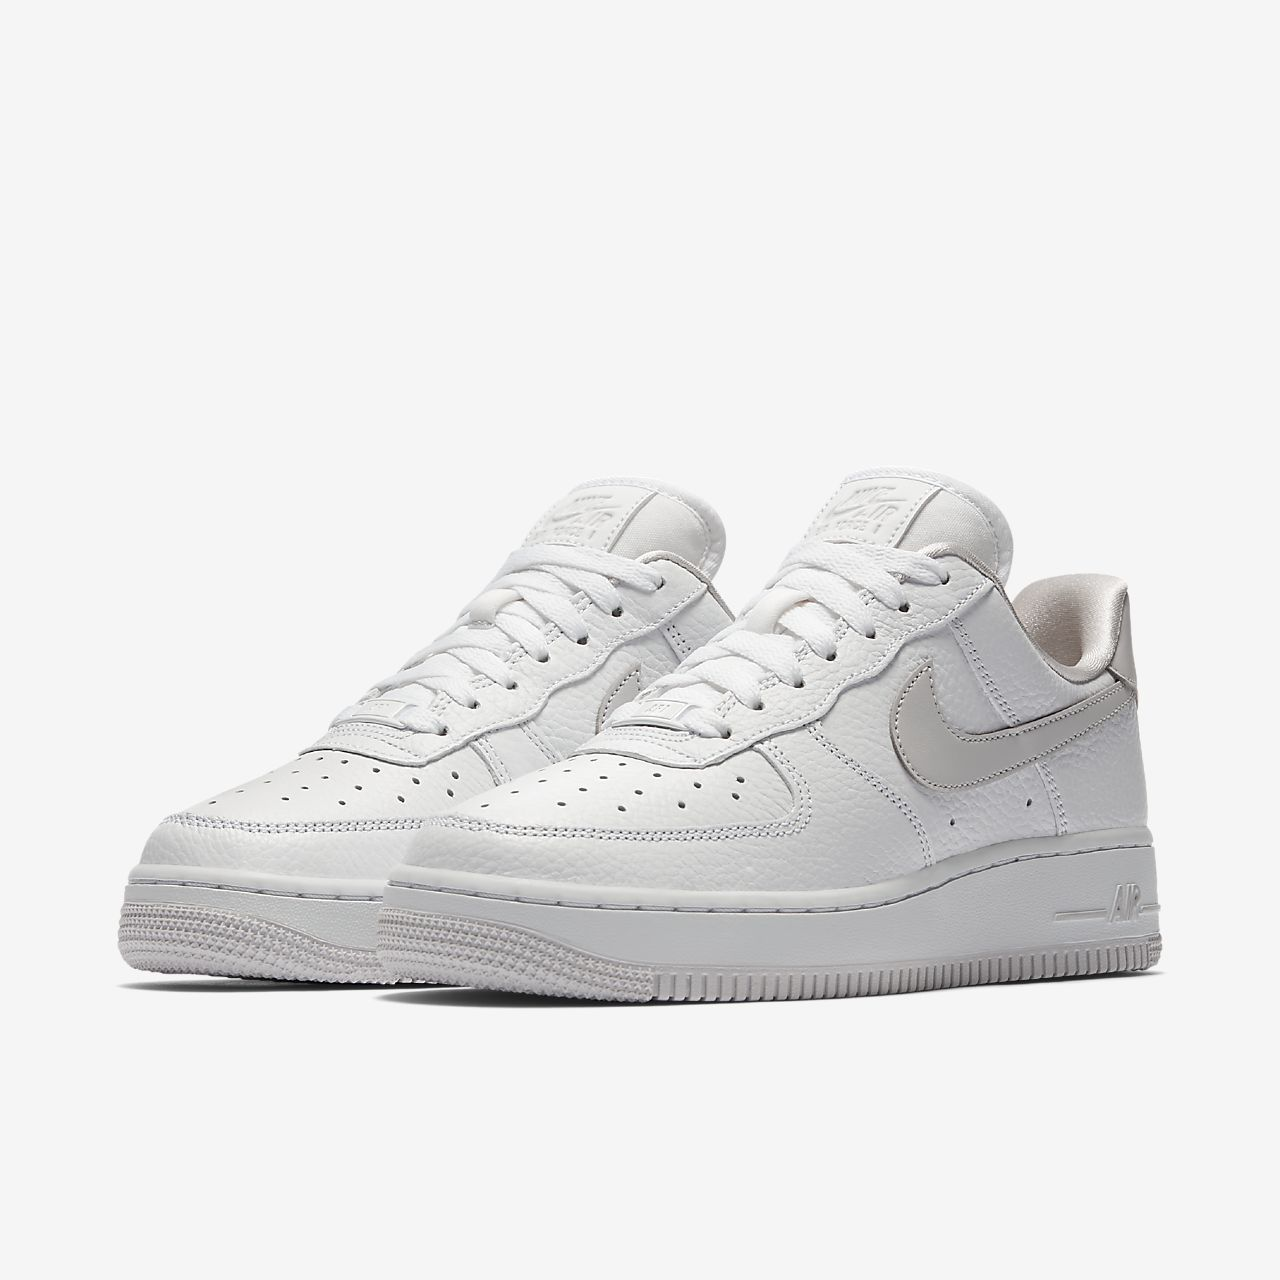 nike air force 1 07 se women's